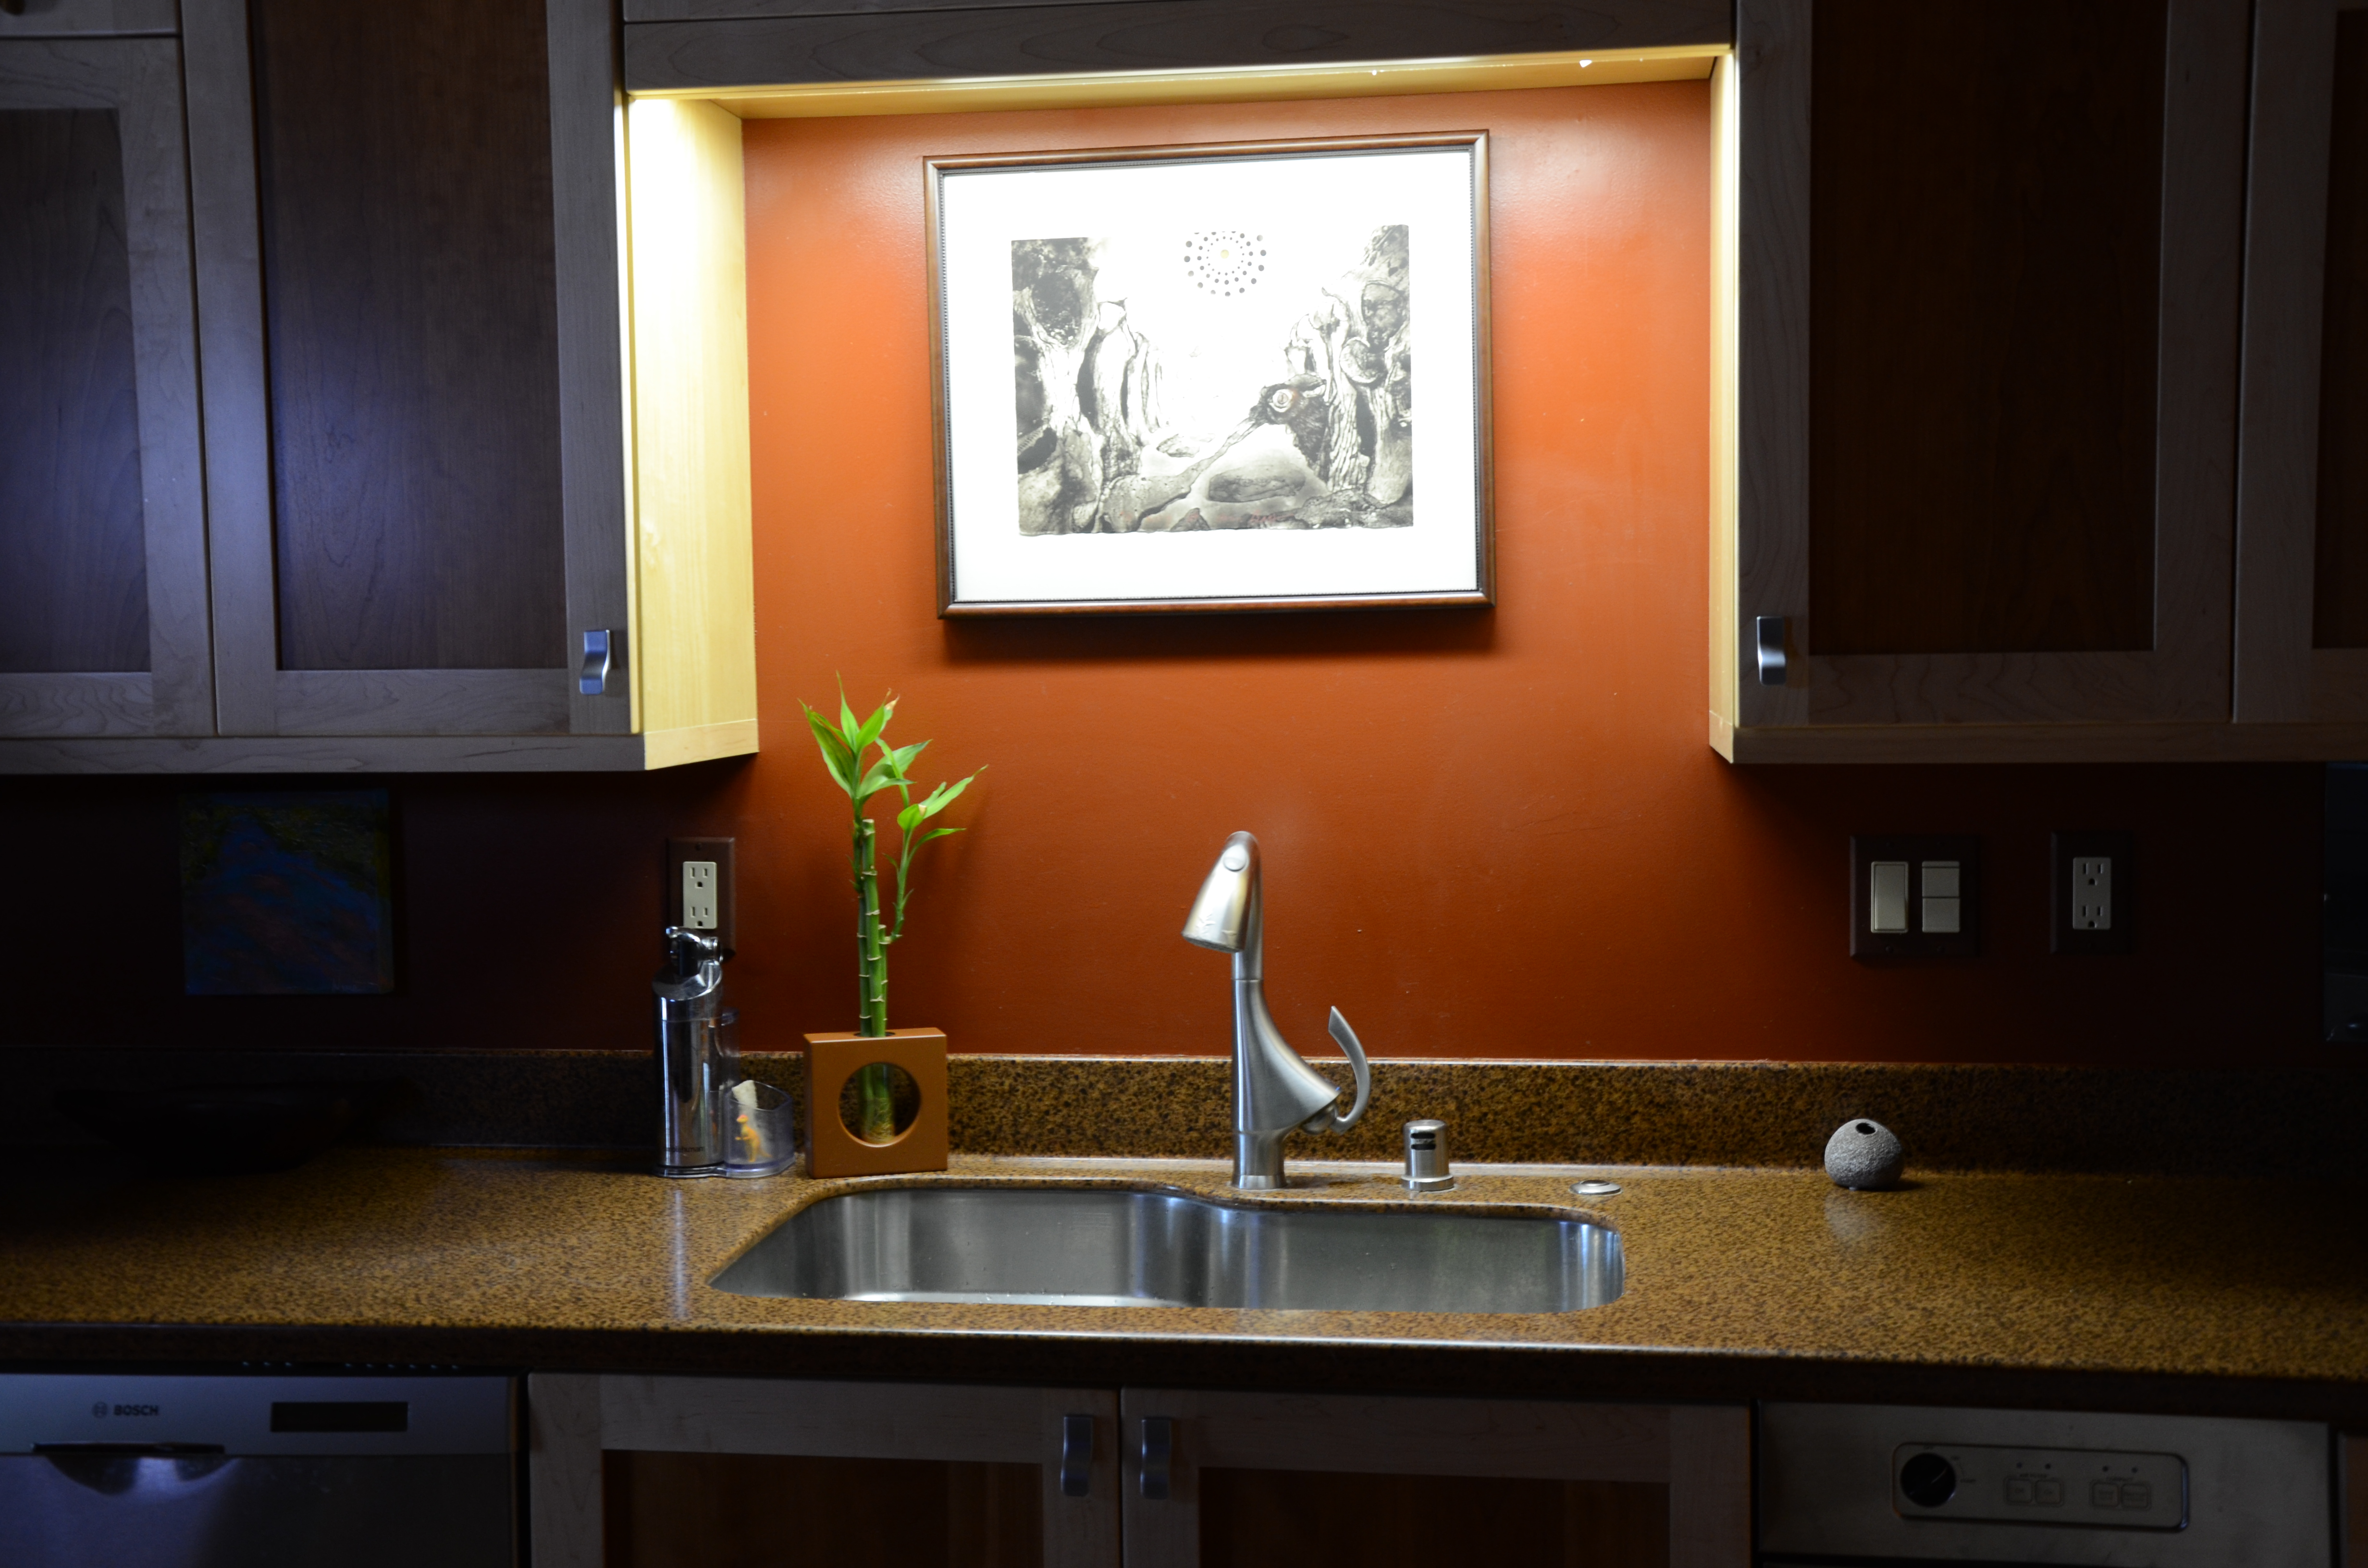 Ceiling lighting fixture for modern sink and faucet a modern kitchen set with storage and luxurious granite countertop and also a painting with tiny black frame